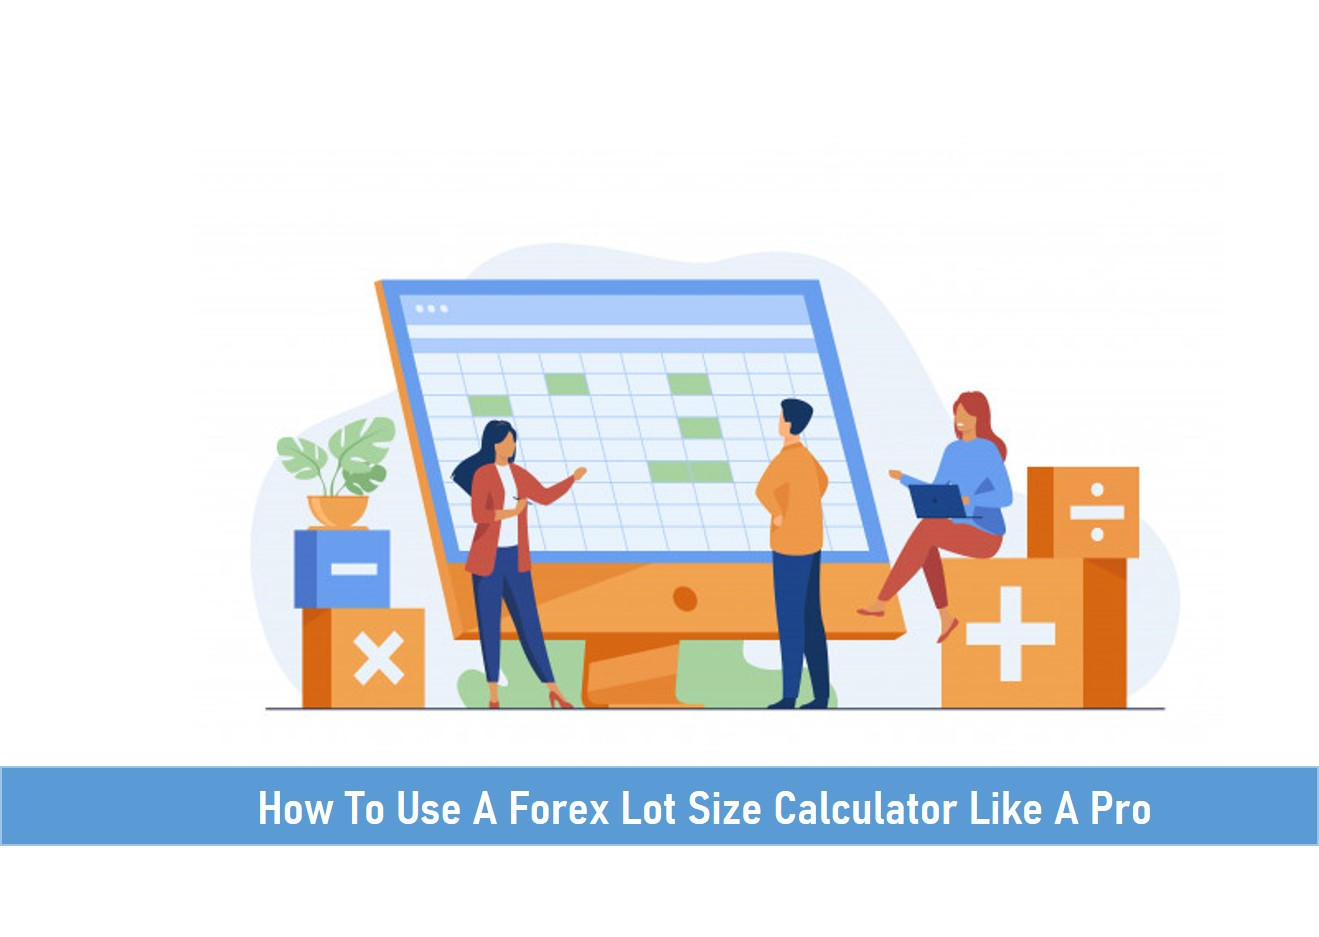 How To Use A Forex Lot Size Calculator Like A Pro